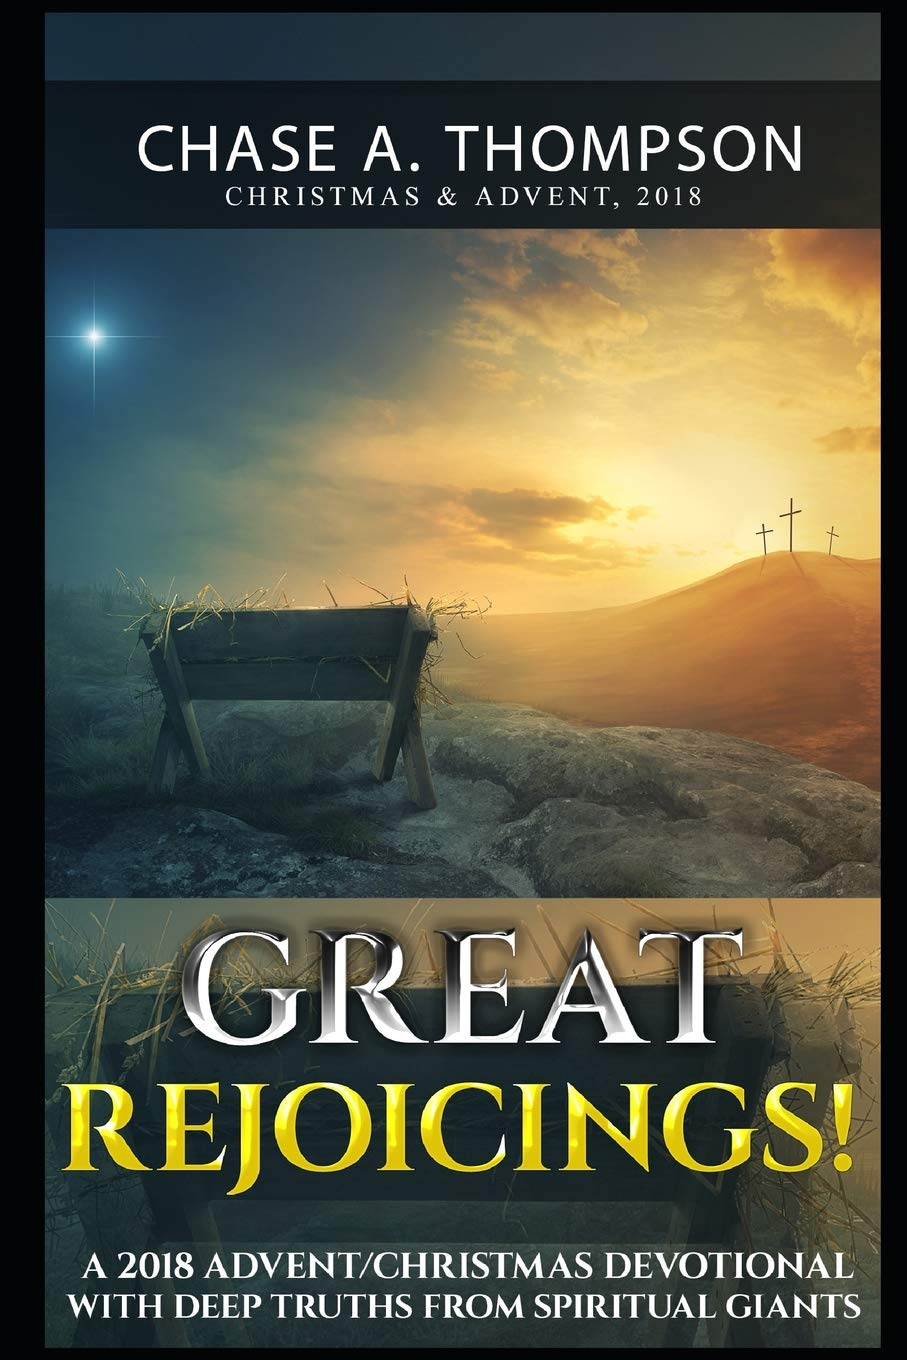 Great Rejoicings   A 2018 Advent Christmas Devotional With Deep Truths From Spiritual Giants.